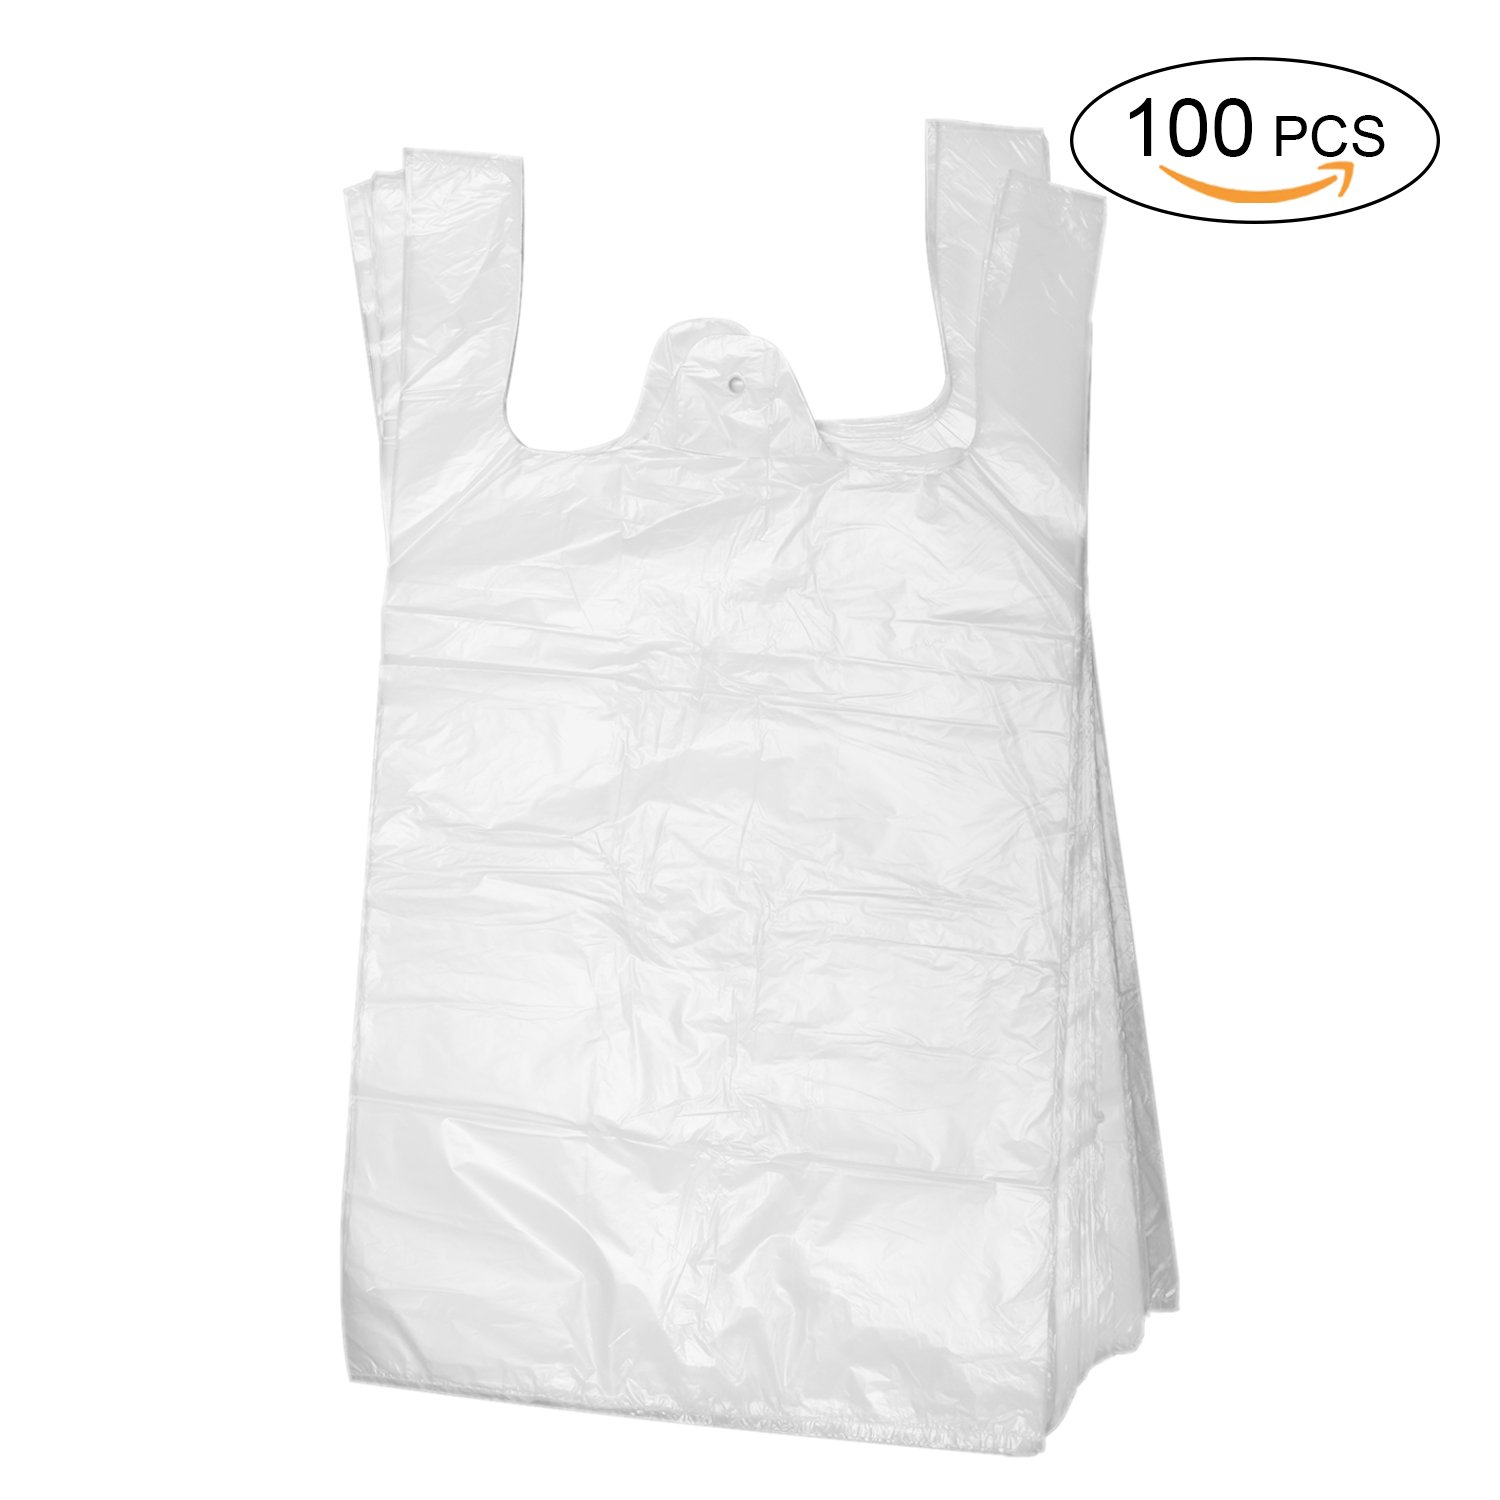 Topgalaxy.Z Plastic T Shirt Bags, Shopping Bags, Merchandise Bags,Plain Grocery Bags, kitchen trash bags, Reusable Grocery Plastic Bags 100 Count